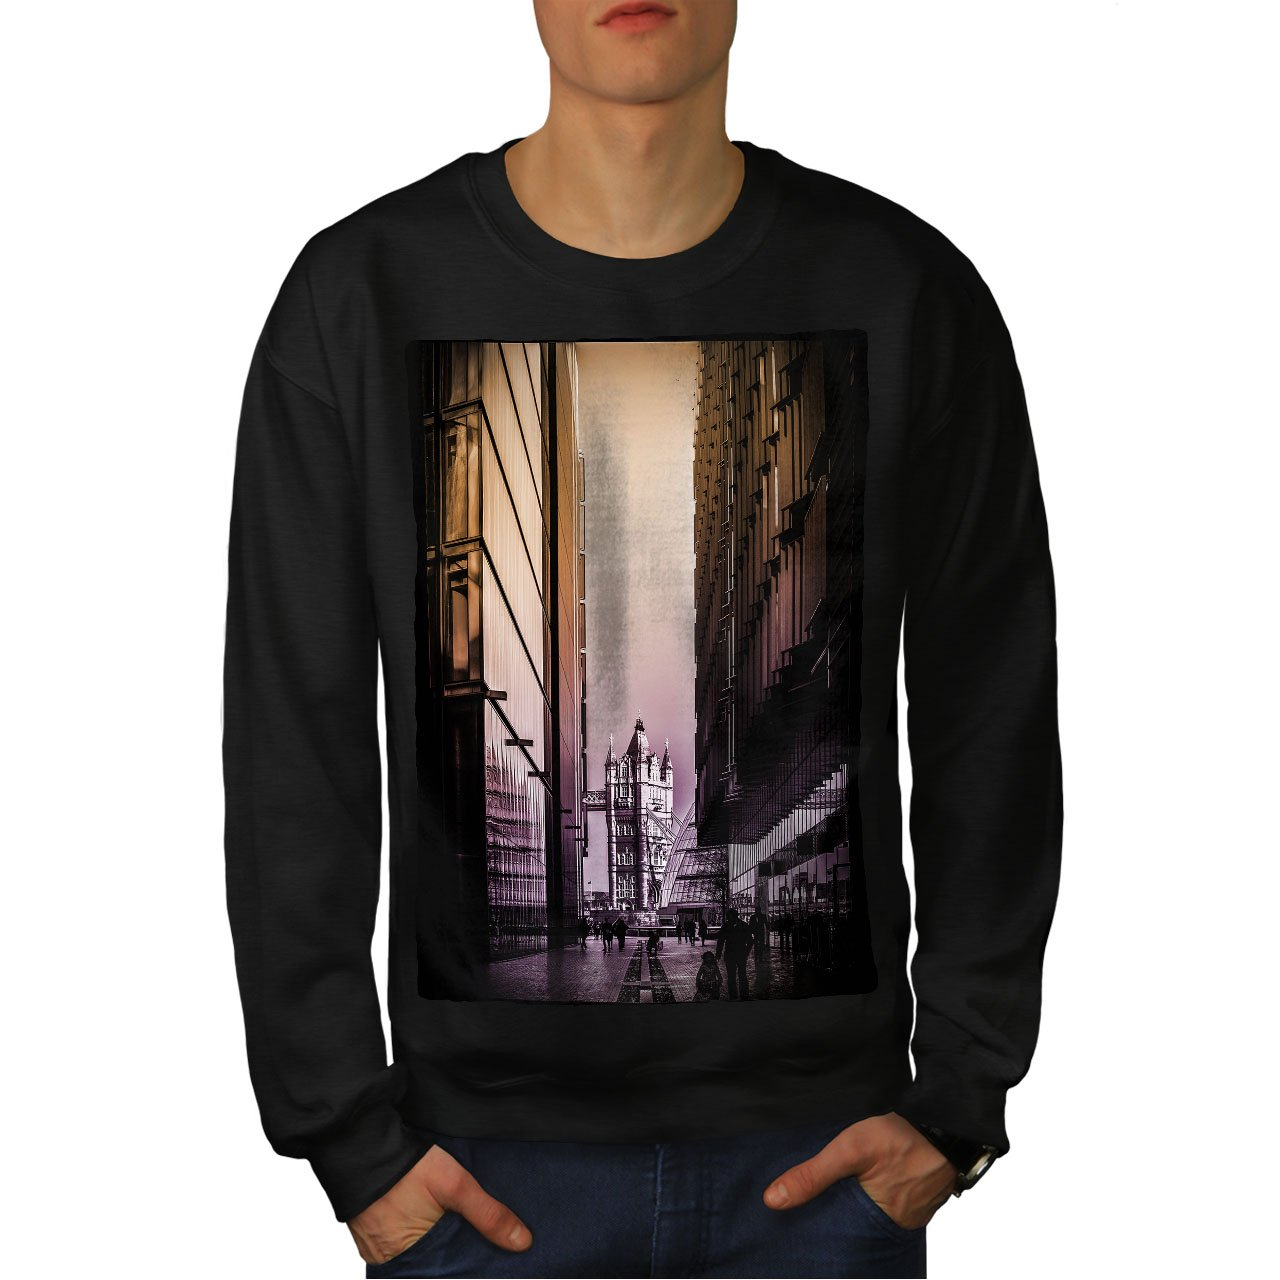 Furry Casual Jumper wellcoda Golden Bridge UK Mens Sweatshirt